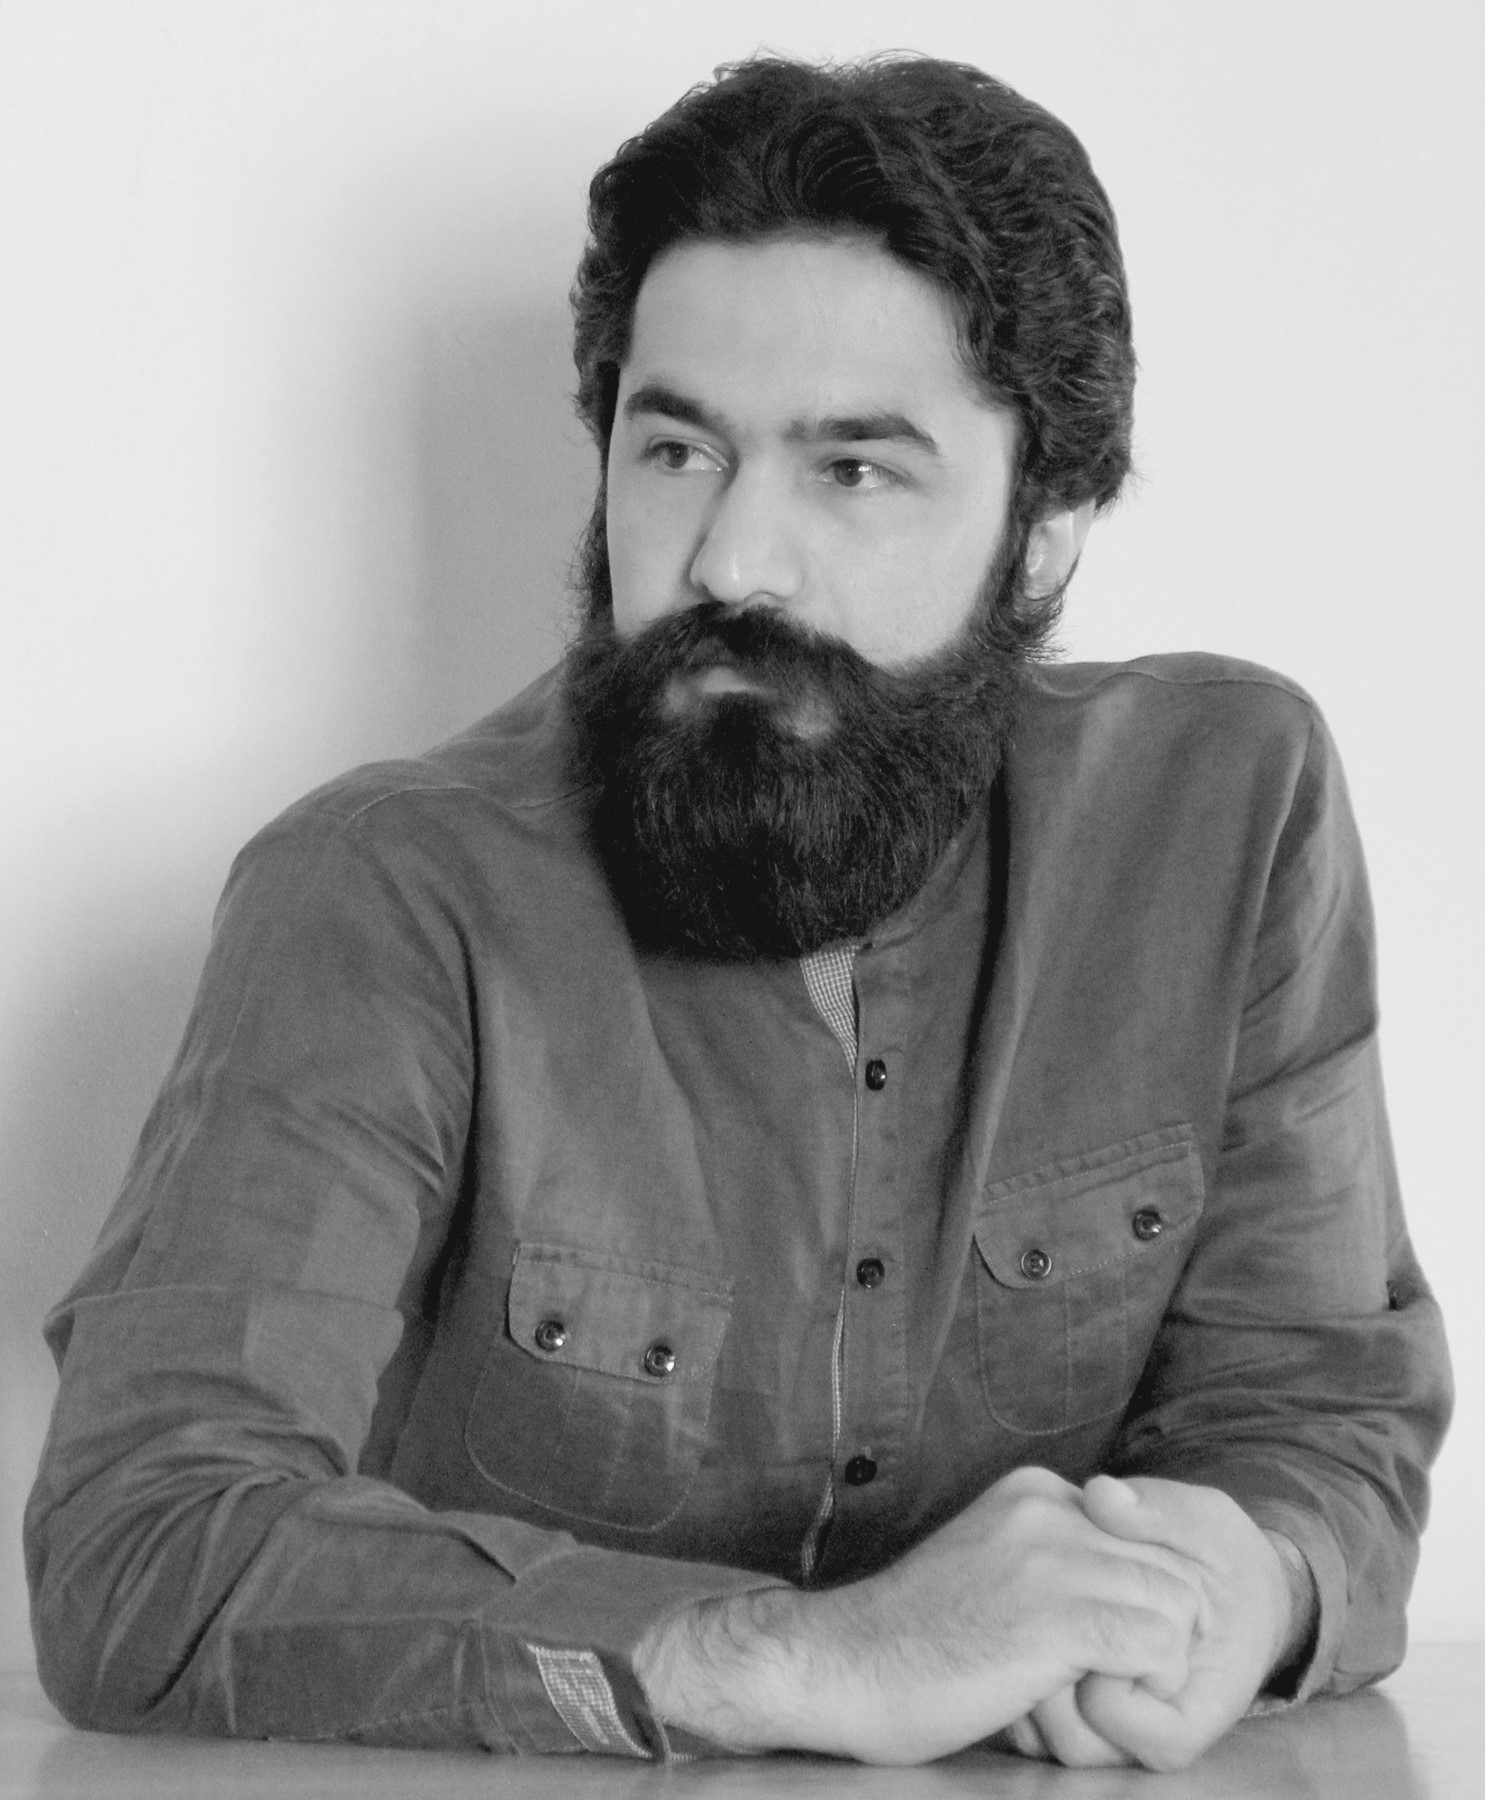 Saeid Aliari  / Iran  'Saeid Aliari' is faculty member of the 'Industrial design department' at the 'Art University of Isfahan'.He believes that design makes the future.On the other hand, culture is an integral part of design, so design should have originality. From his view precise understanding of culture, thinking critically and creativity are the key features that can be effective to make the future.